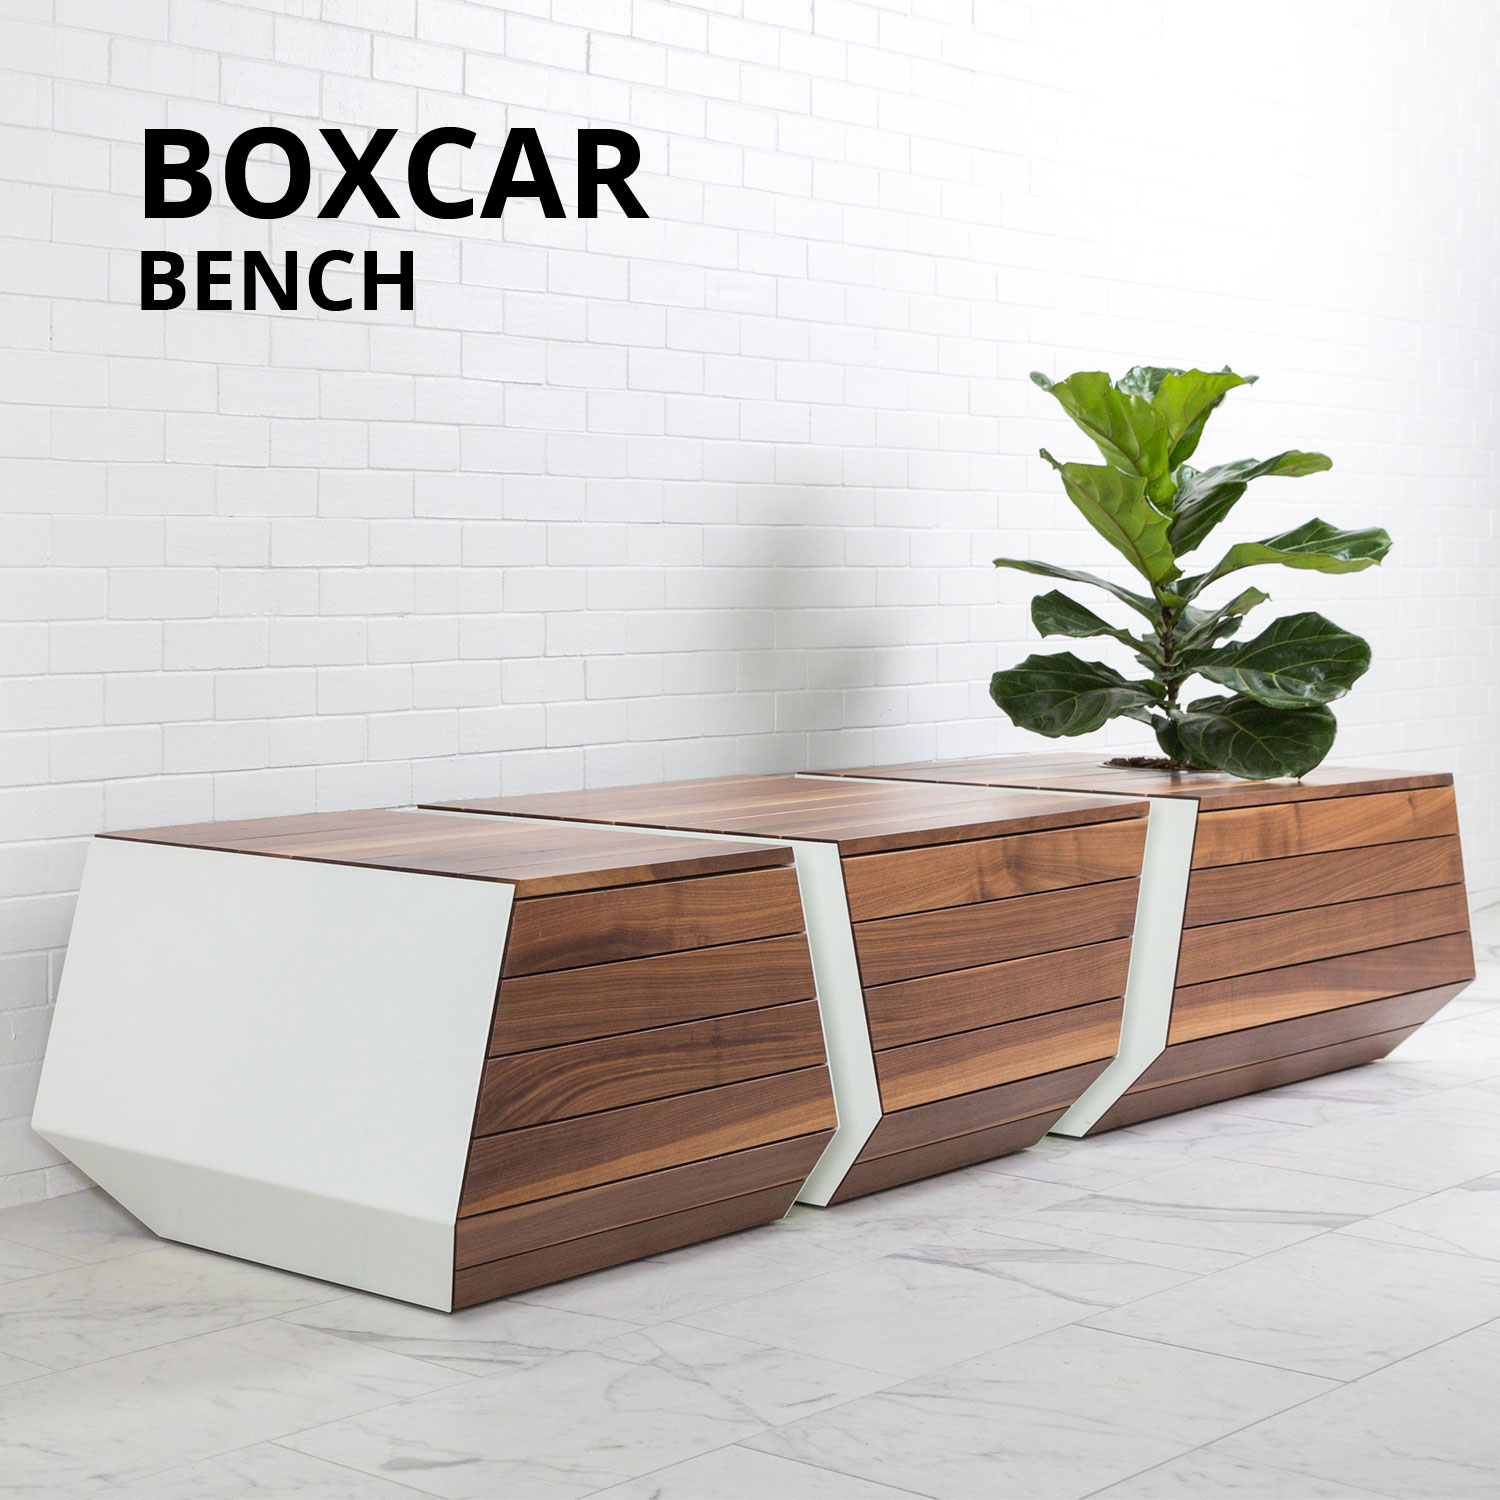 BoxcarBench_caption.jpg